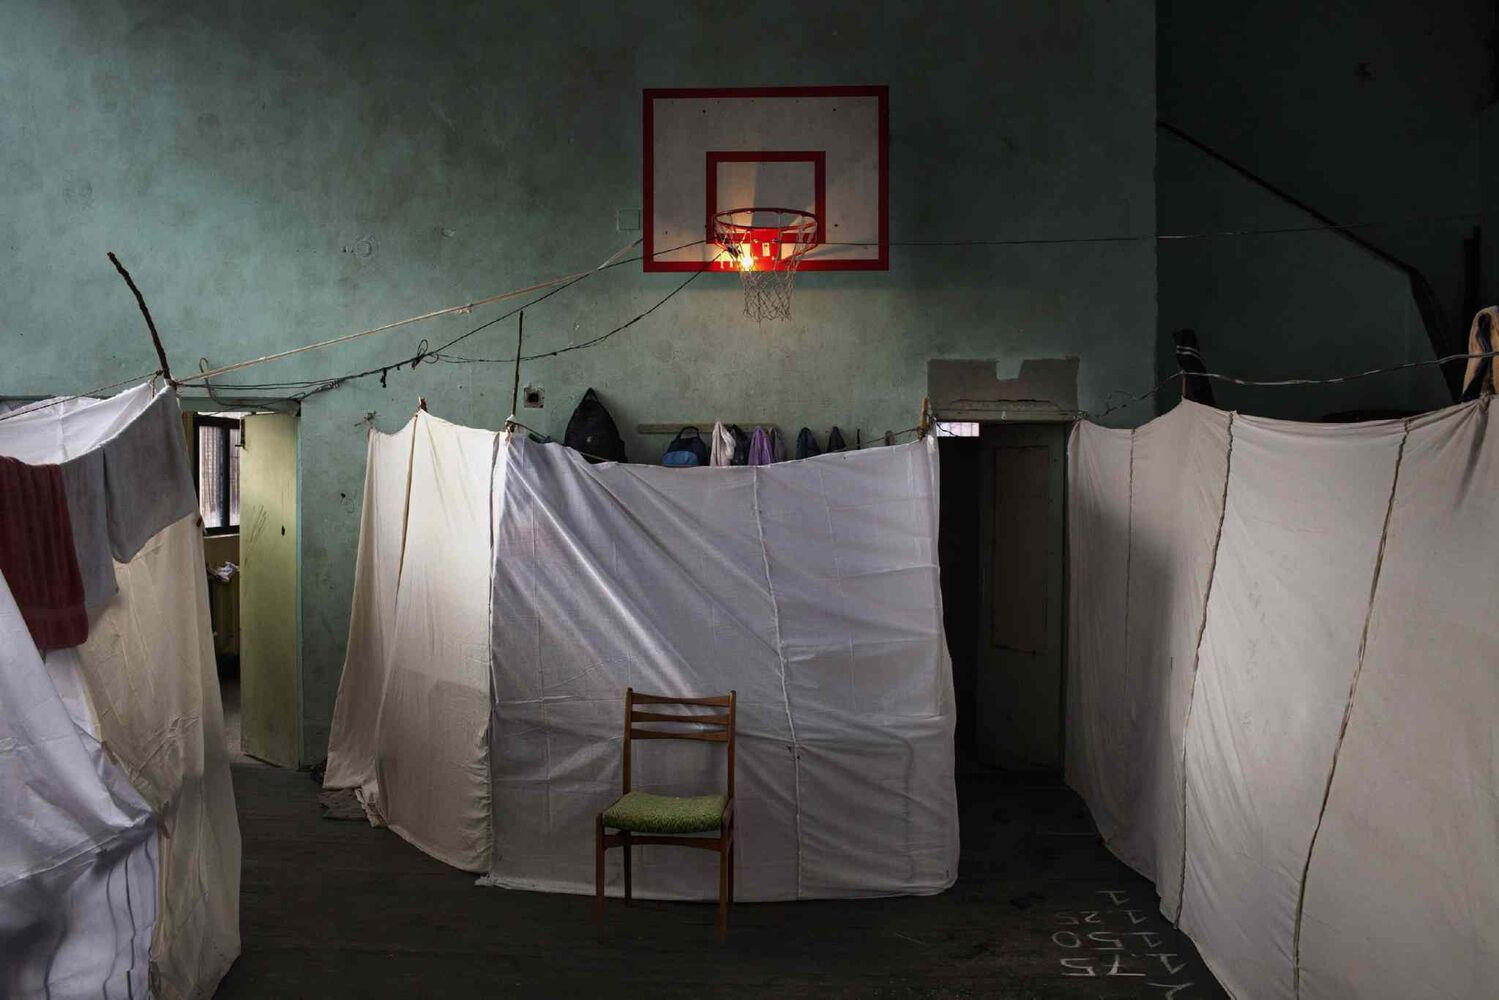 First prize in the General News Single category by Alessandro Penso of Italy<p> Military Ramp, an emergency refugee centre in an abandoned school in Sofia, Bulgaria, provides housing for about 800 Syrian refugees, including 390 children. Pictured Nov. 21, 2013. (Alessandro Penso, OnOff Picture)